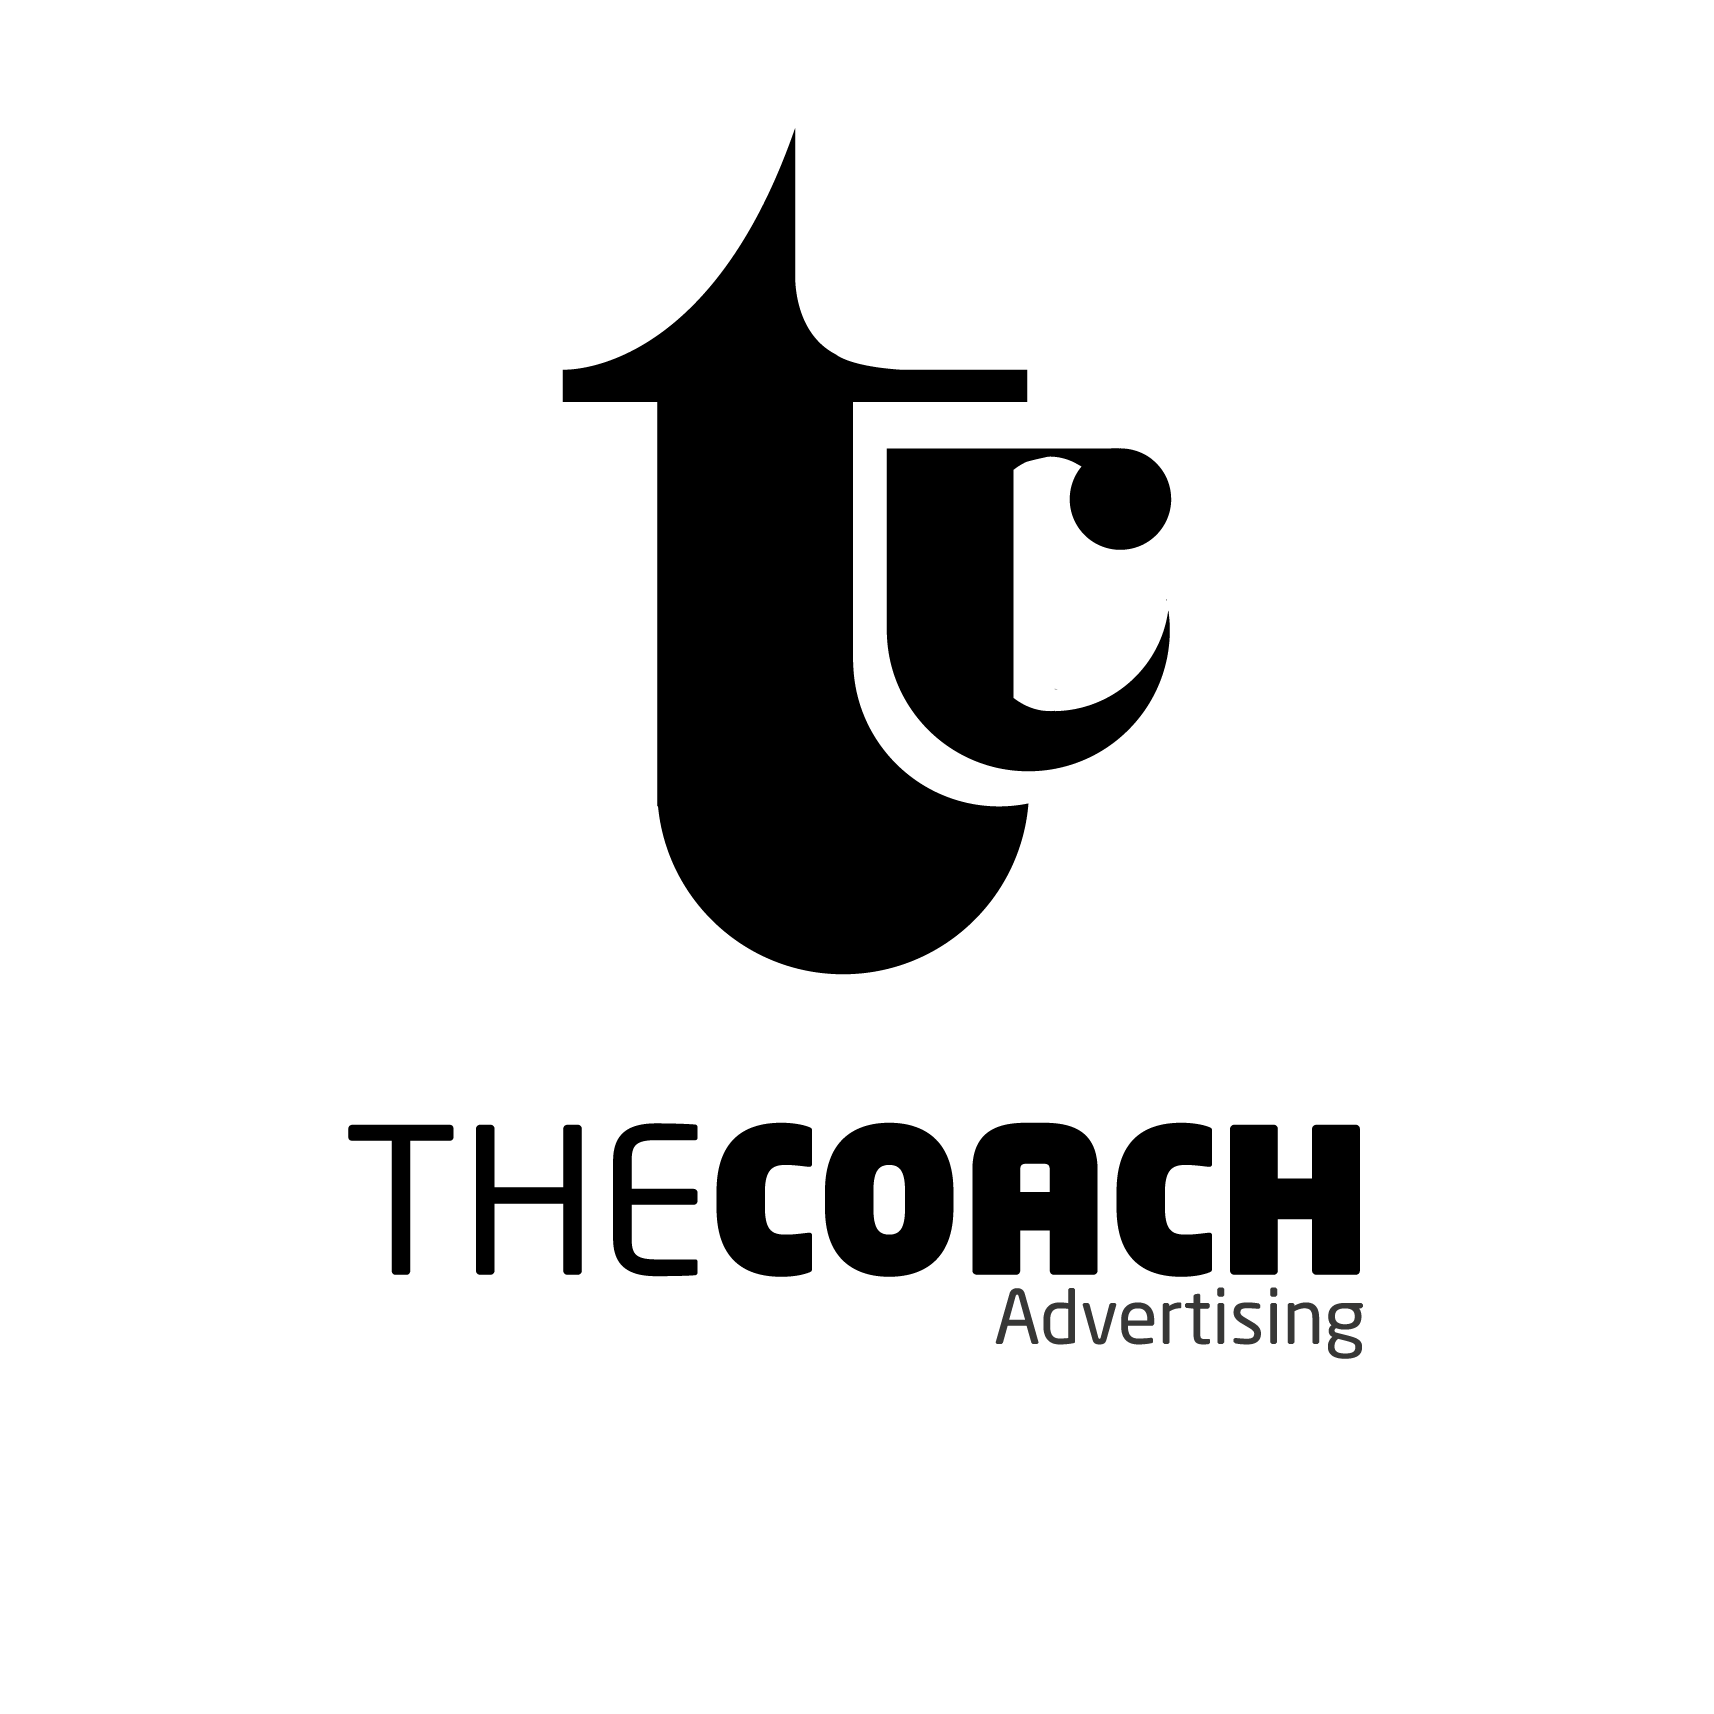 The Coach Advertising RDC Logo